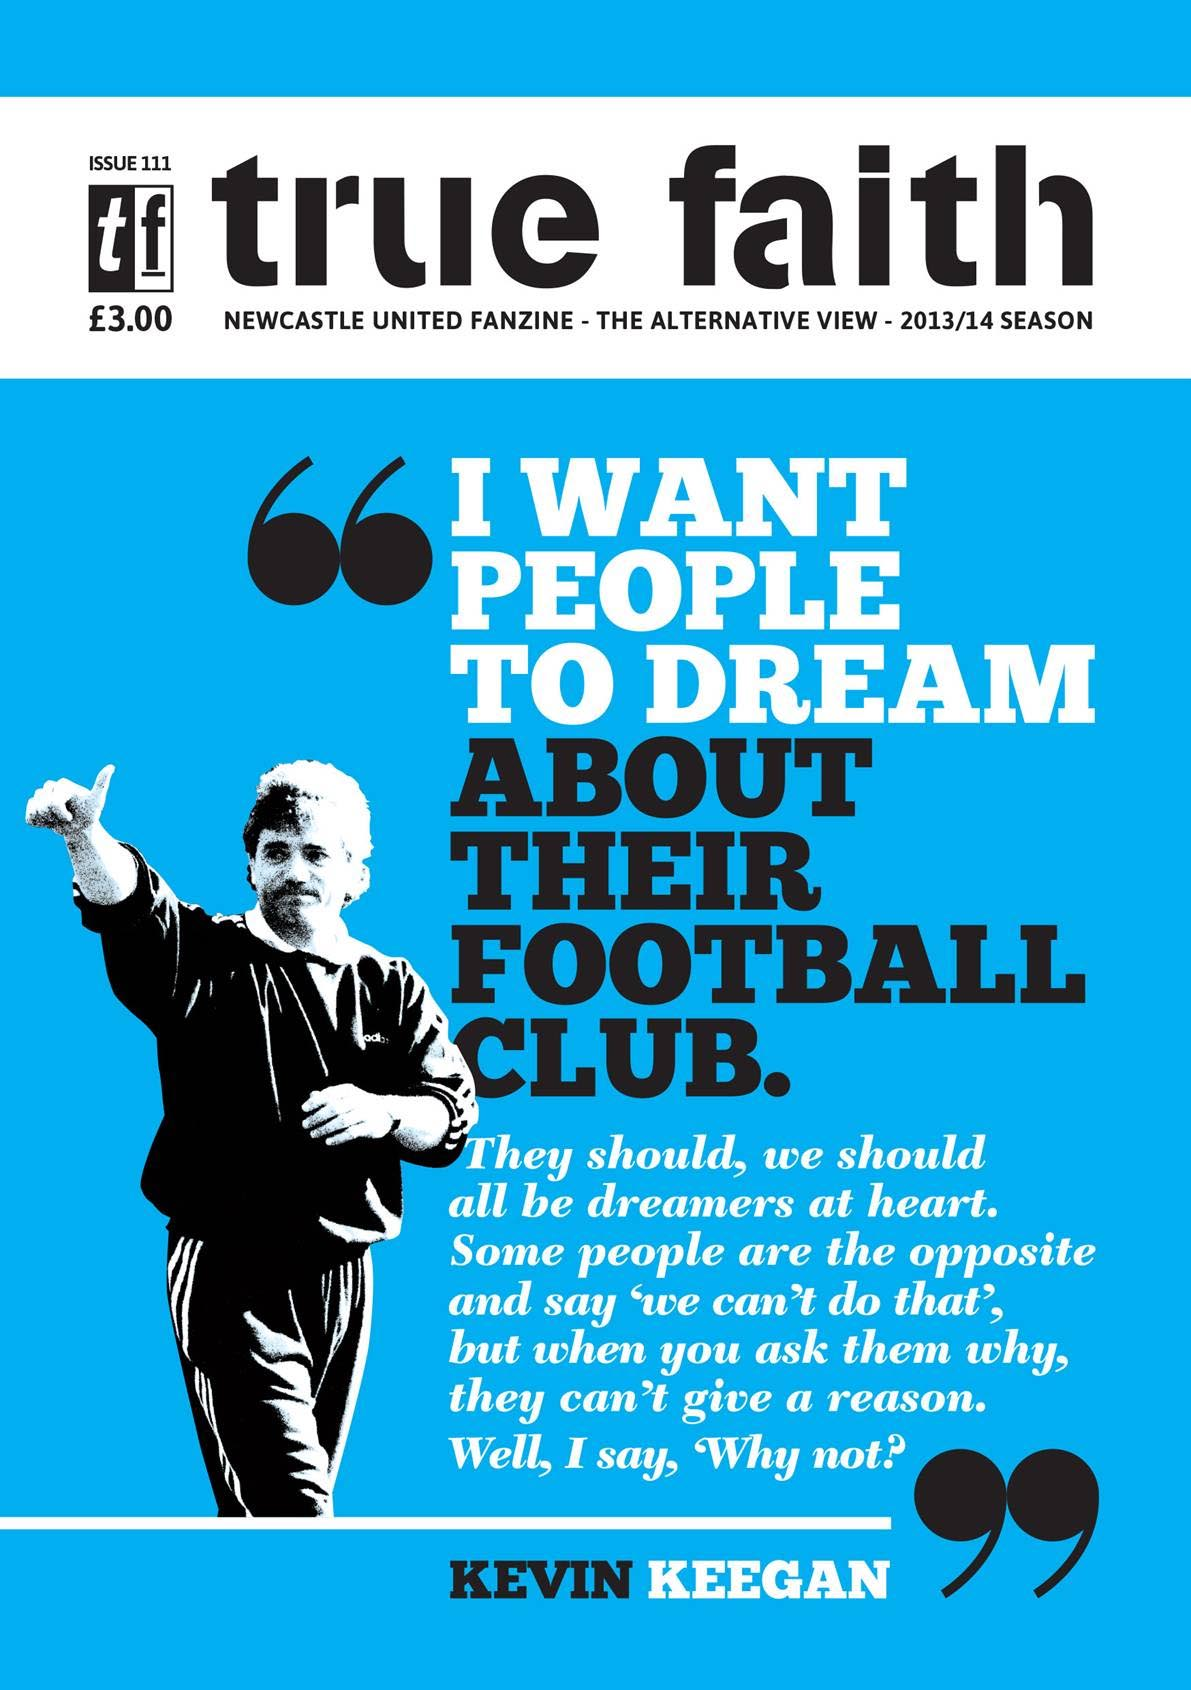 True_Faith_Issue_111_April_2014_May_2014_NUFC